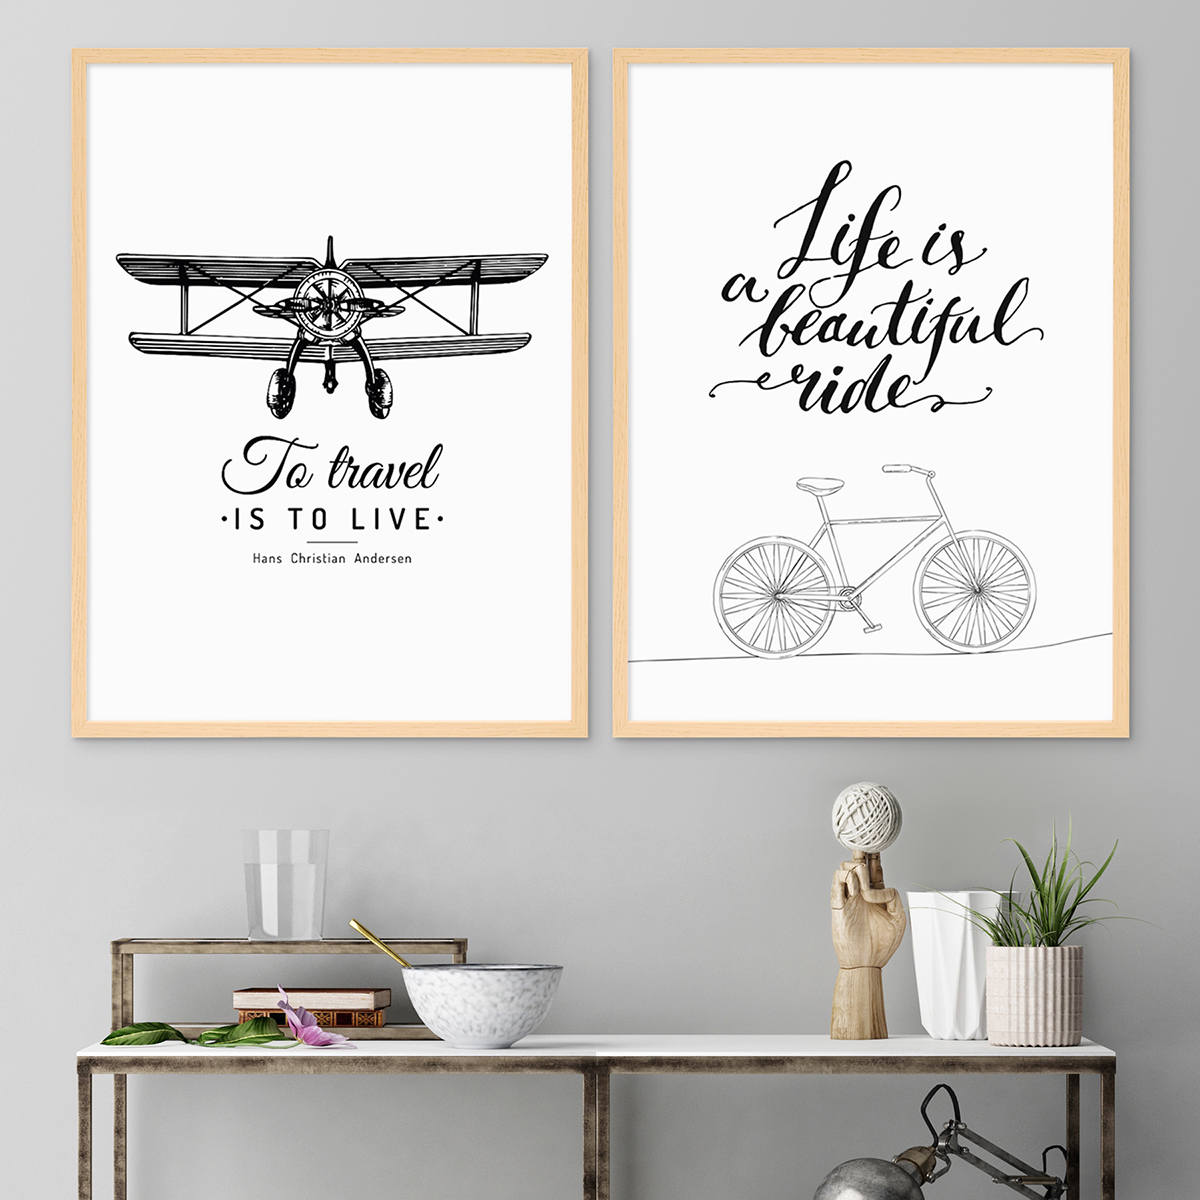 2er set schwarz weiss poster mit bilderrahmen natur 30x40 cm typografie spruch reisen life. Black Bedroom Furniture Sets. Home Design Ideas